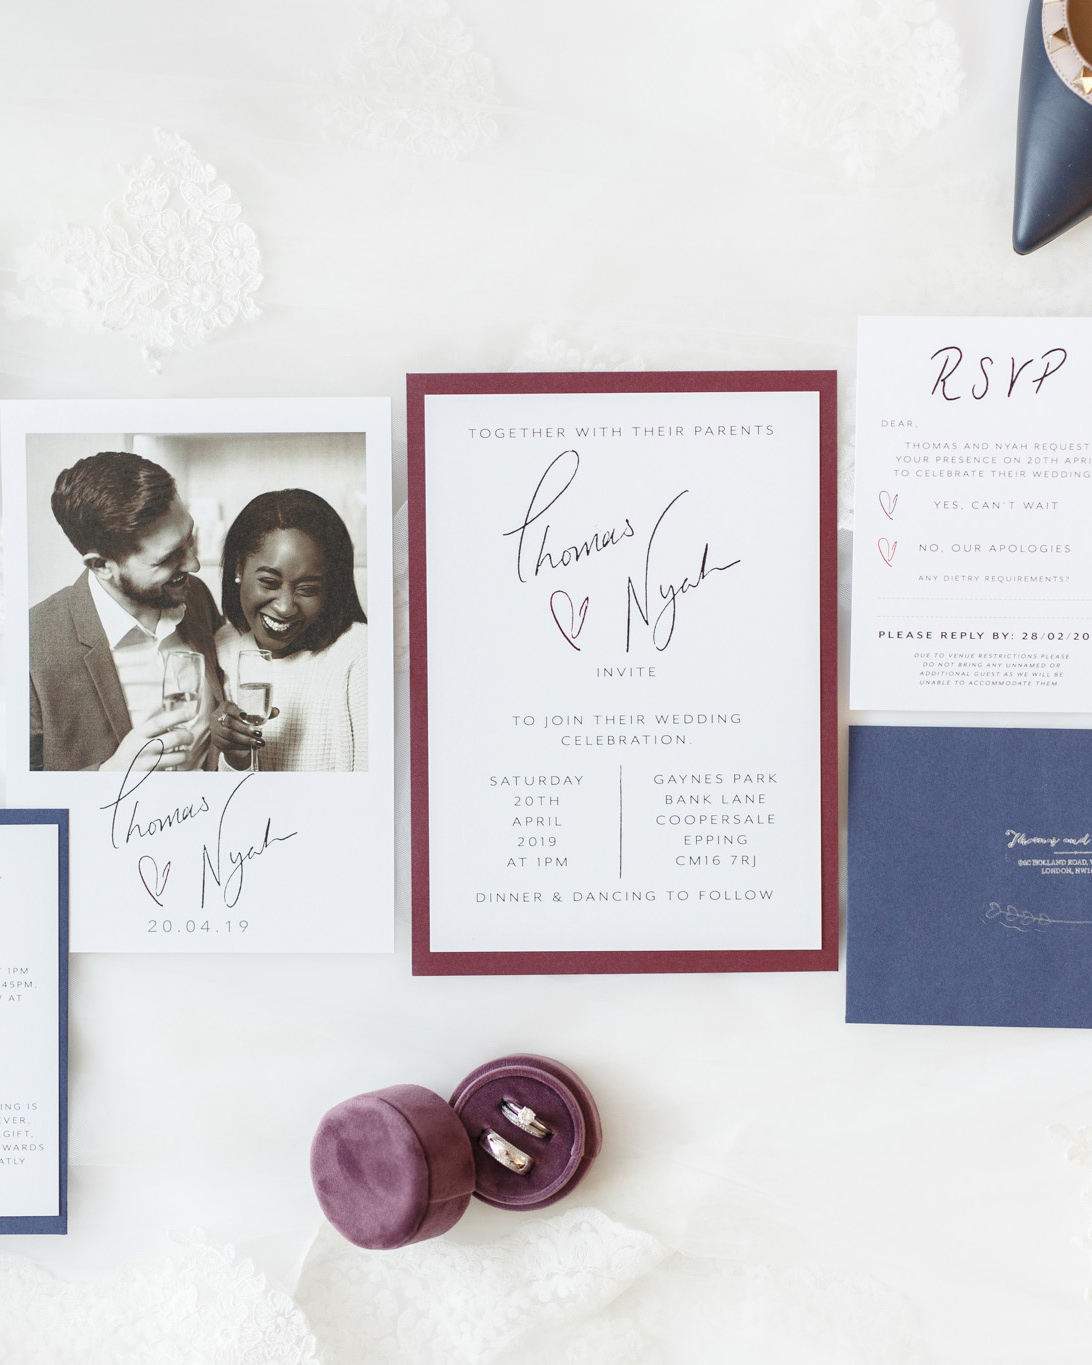 ryan thomas wedding invites in white, purple, and navy